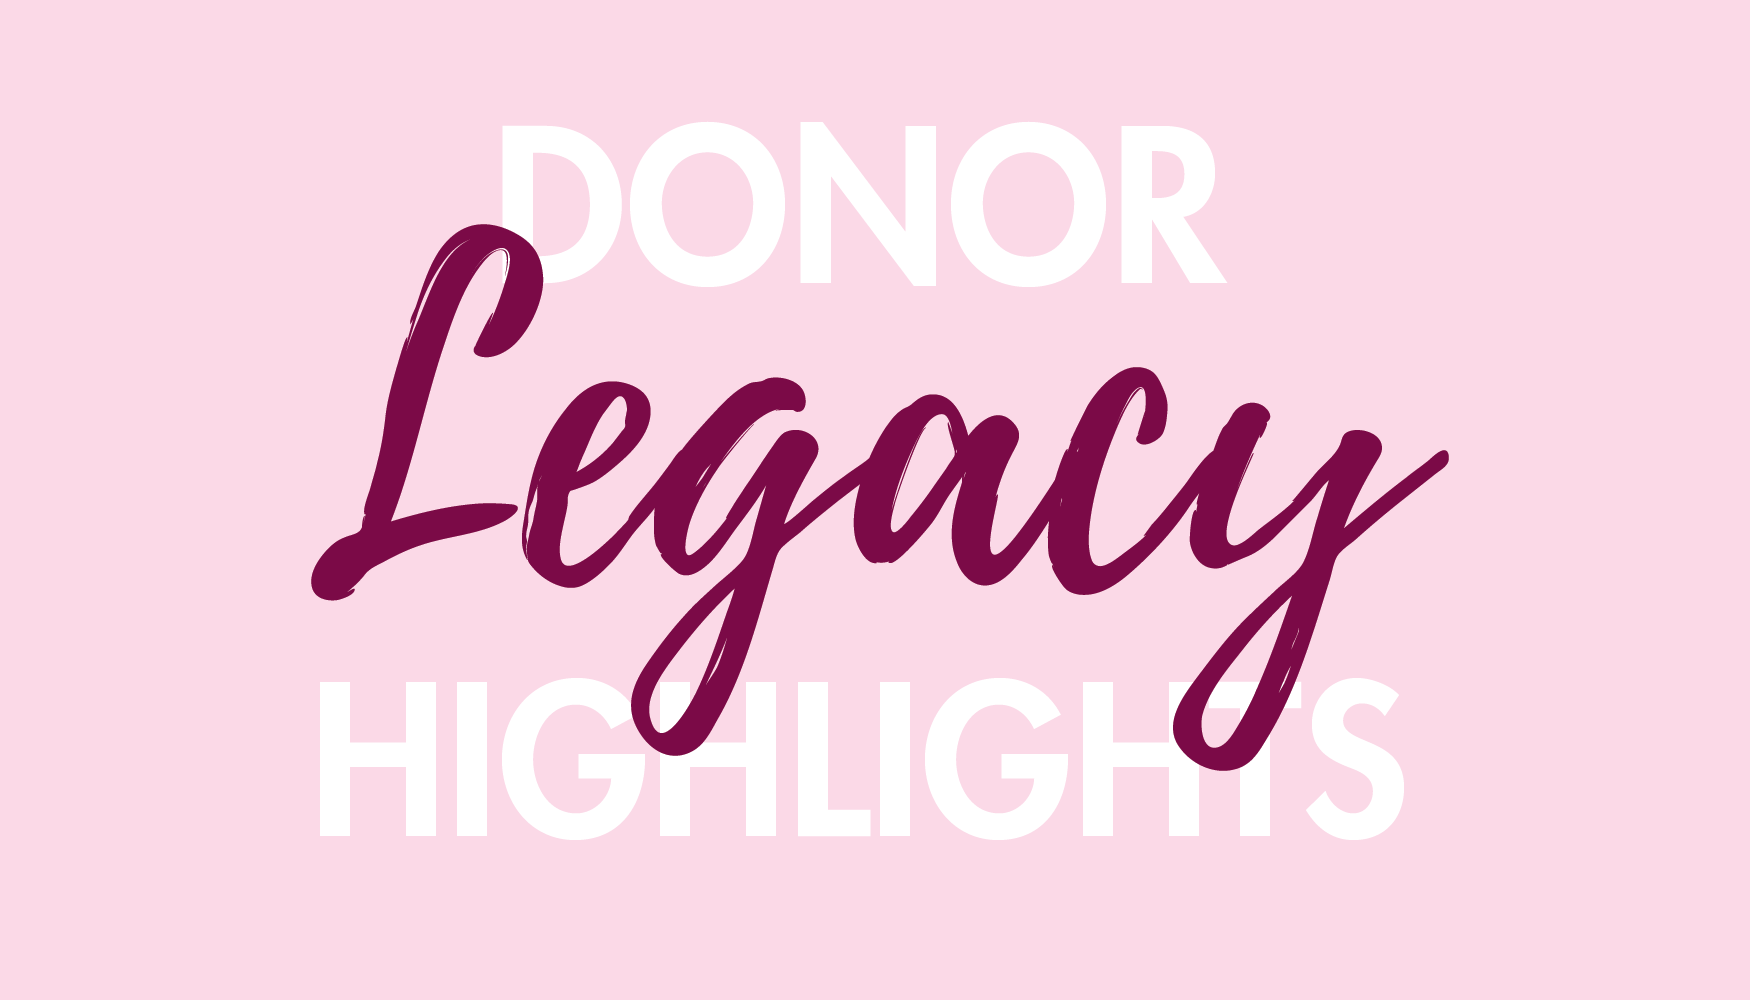 Donor Legacy Highlights